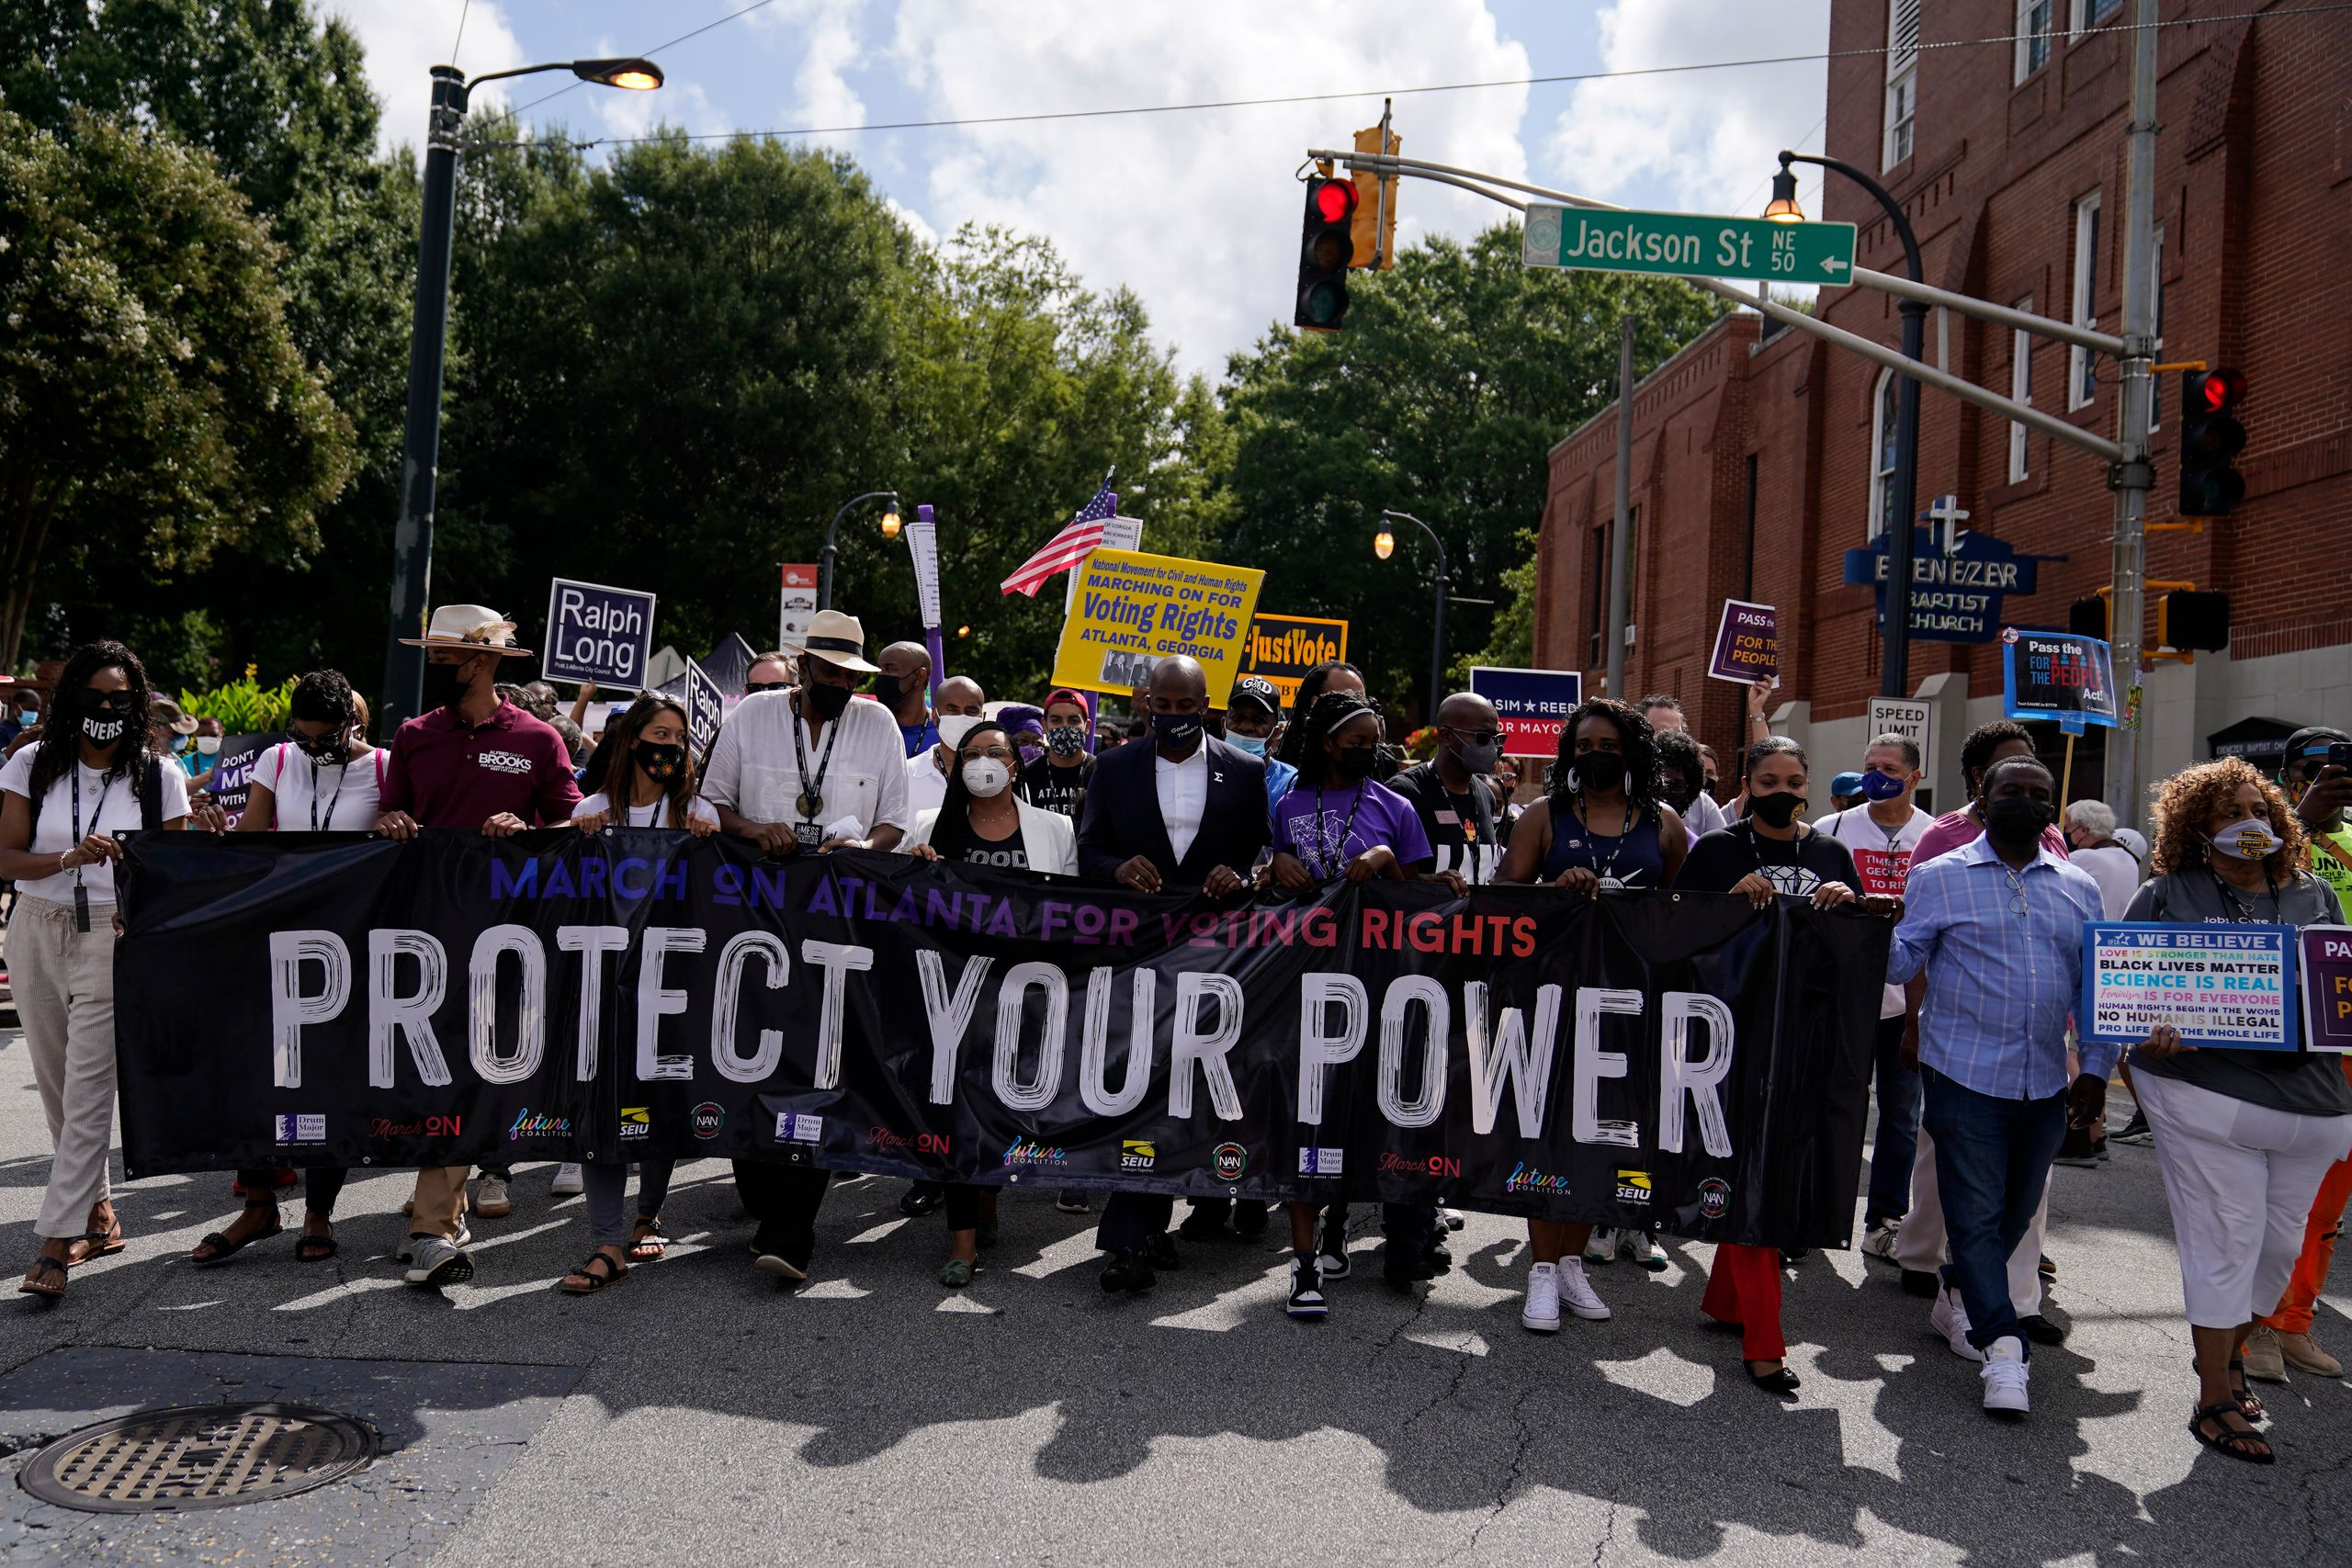 Atlantans demonstrate in favor of federal voting rights legislation on Aug. 28, the 58th anniversary of the March on Washingt